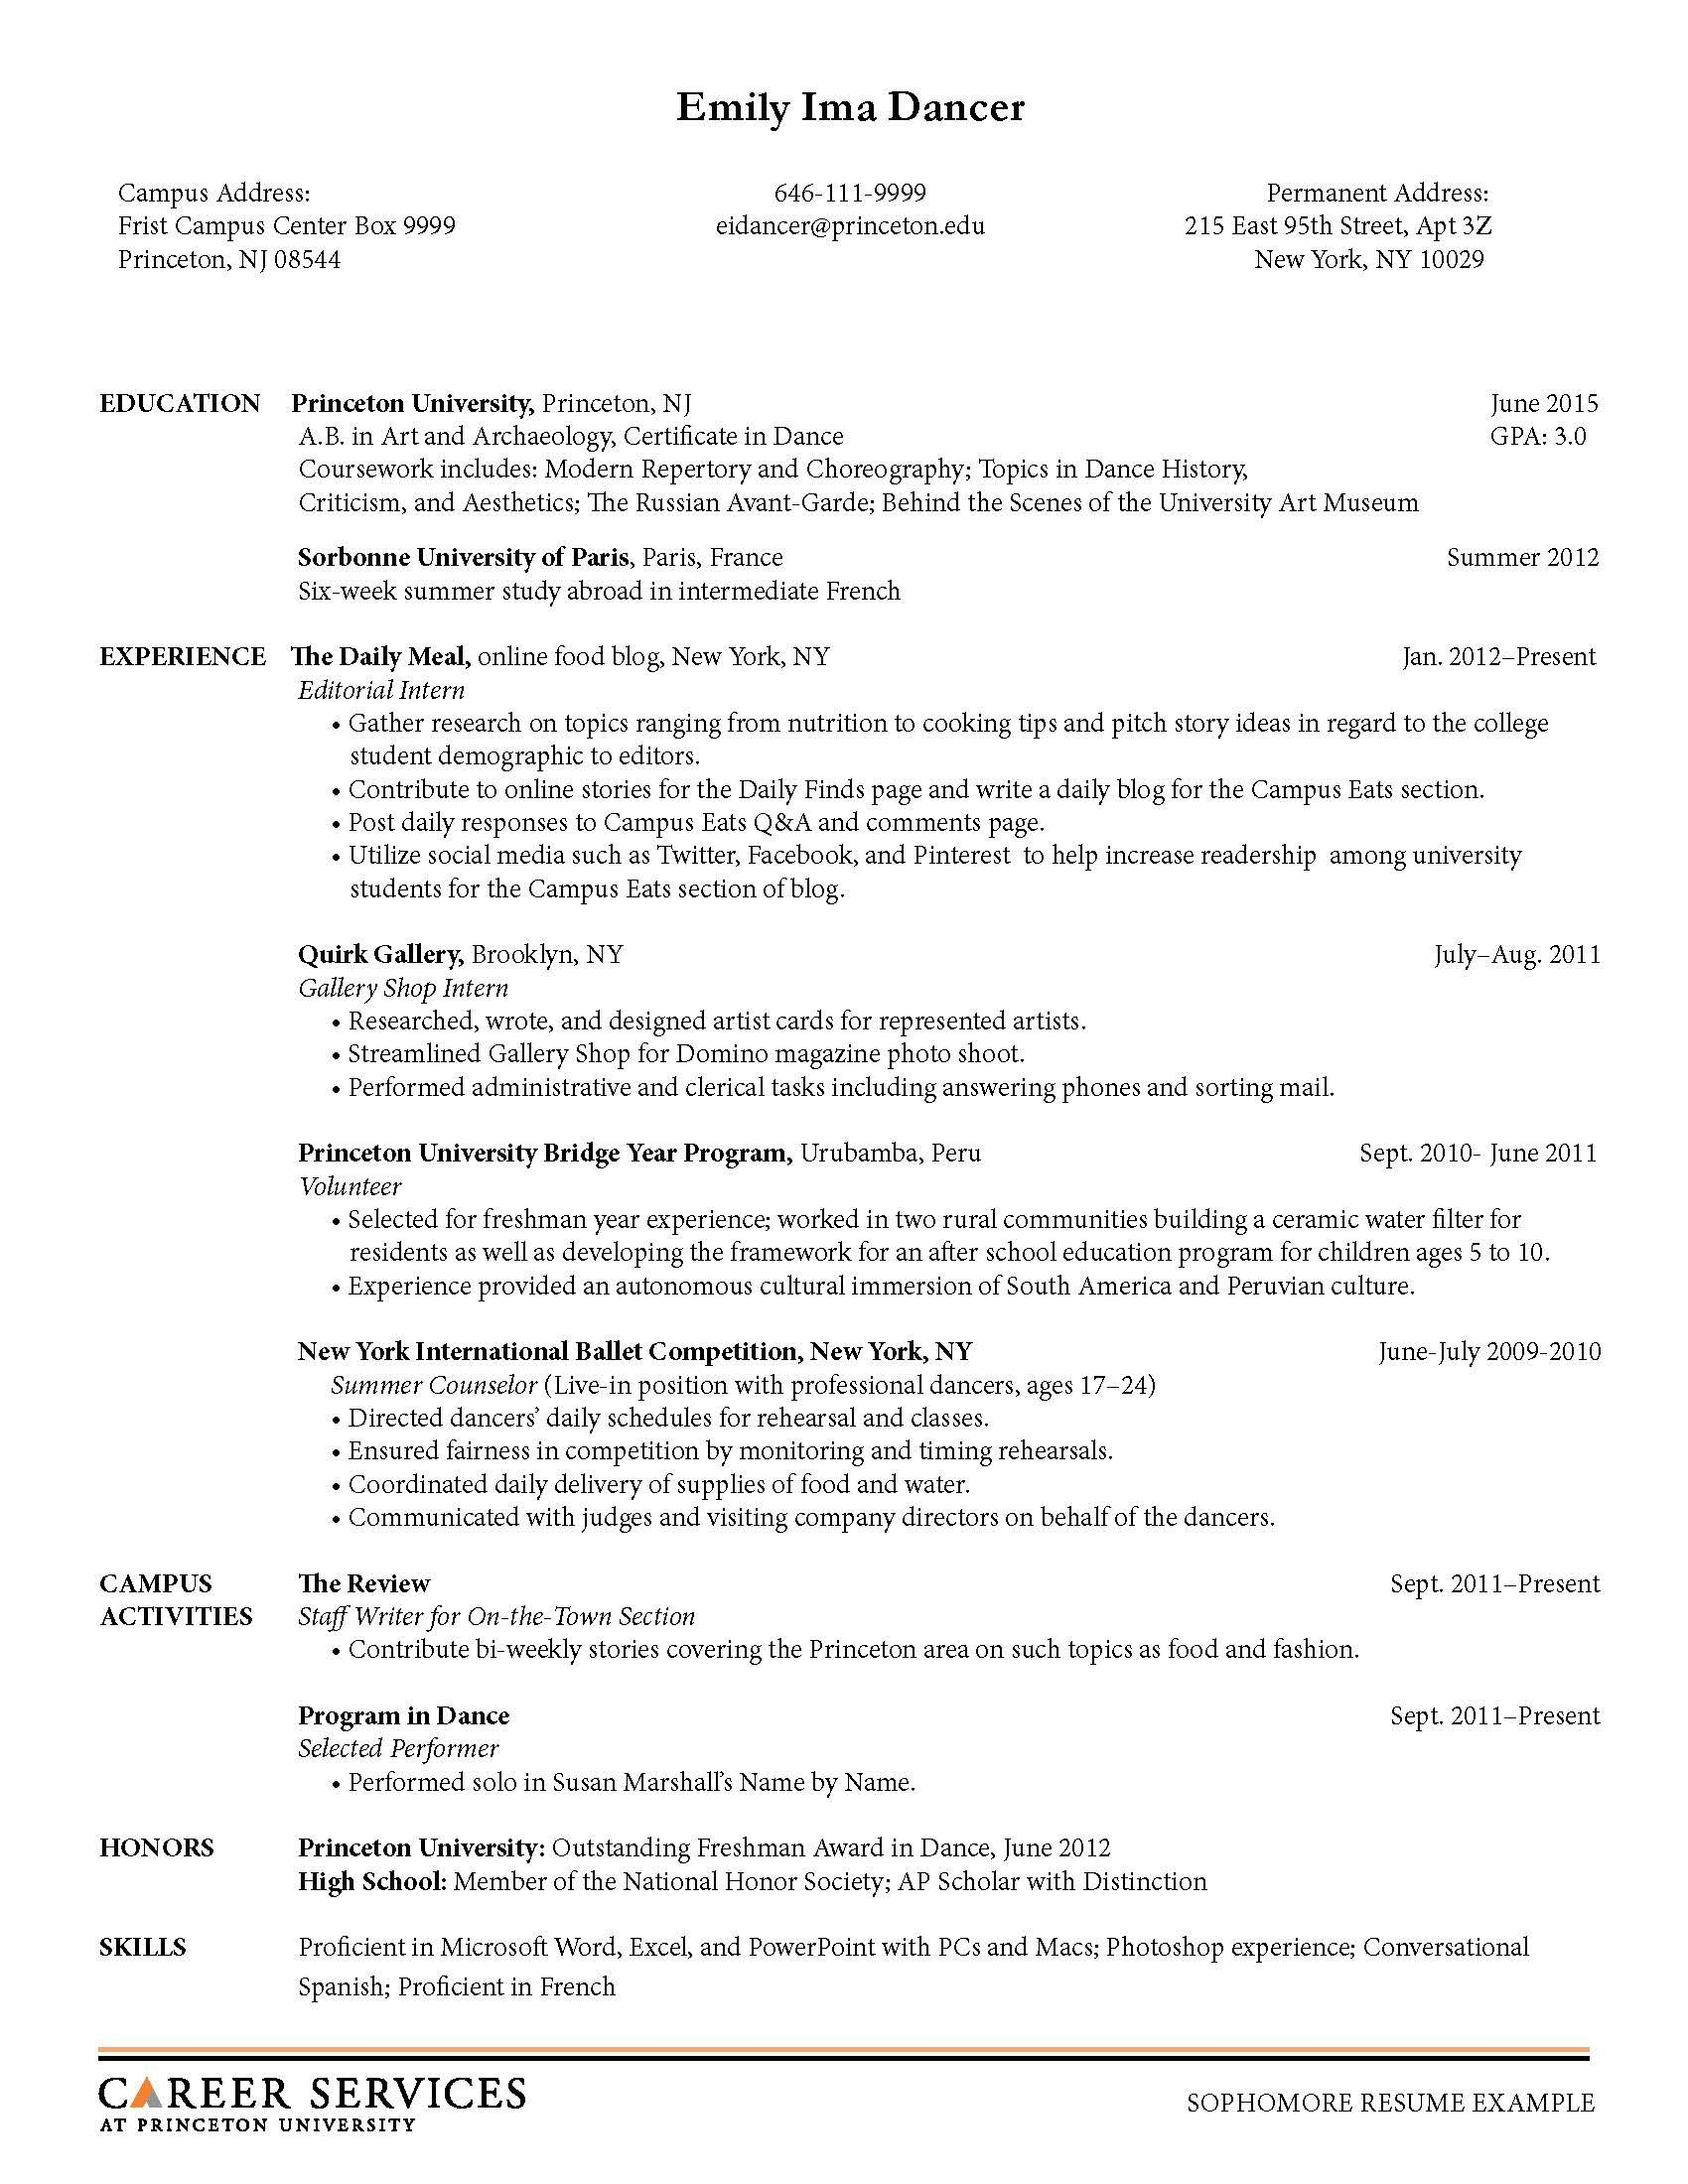 Opposenewapstandardsus  Inspiring Sample Resume Resume And Career On Pinterest With Foxy Difference Between Resume And Cv Besides Security Guard Resume Furthermore How To Make A Cover Letter For A Resume With Lovely Free Downloadable Resume Templates Also Sales Manager Resume In Addition Good Skills For Resume And Resume Review As Well As How To List Education On Resume Additionally Graphic Design Resumes From Pinterestcom With Opposenewapstandardsus  Foxy Sample Resume Resume And Career On Pinterest With Lovely Difference Between Resume And Cv Besides Security Guard Resume Furthermore How To Make A Cover Letter For A Resume And Inspiring Free Downloadable Resume Templates Also Sales Manager Resume In Addition Good Skills For Resume From Pinterestcom